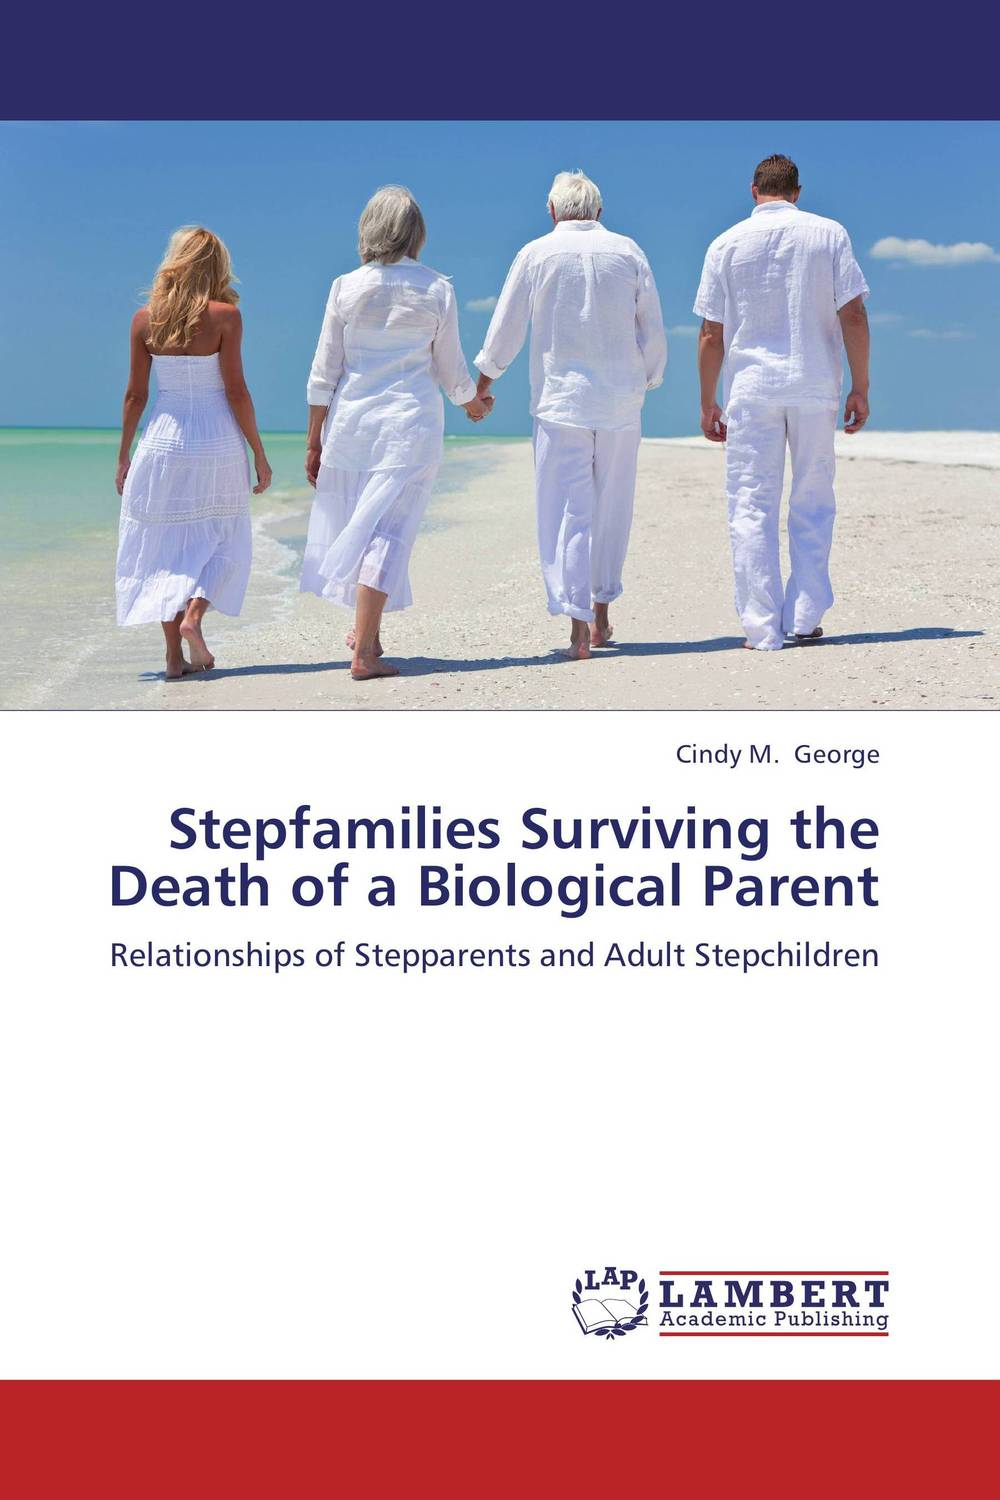 Stepfamilies Surviving the Death of a Biological Parent cindy m george stepfamilies surviving the death of a biological parent